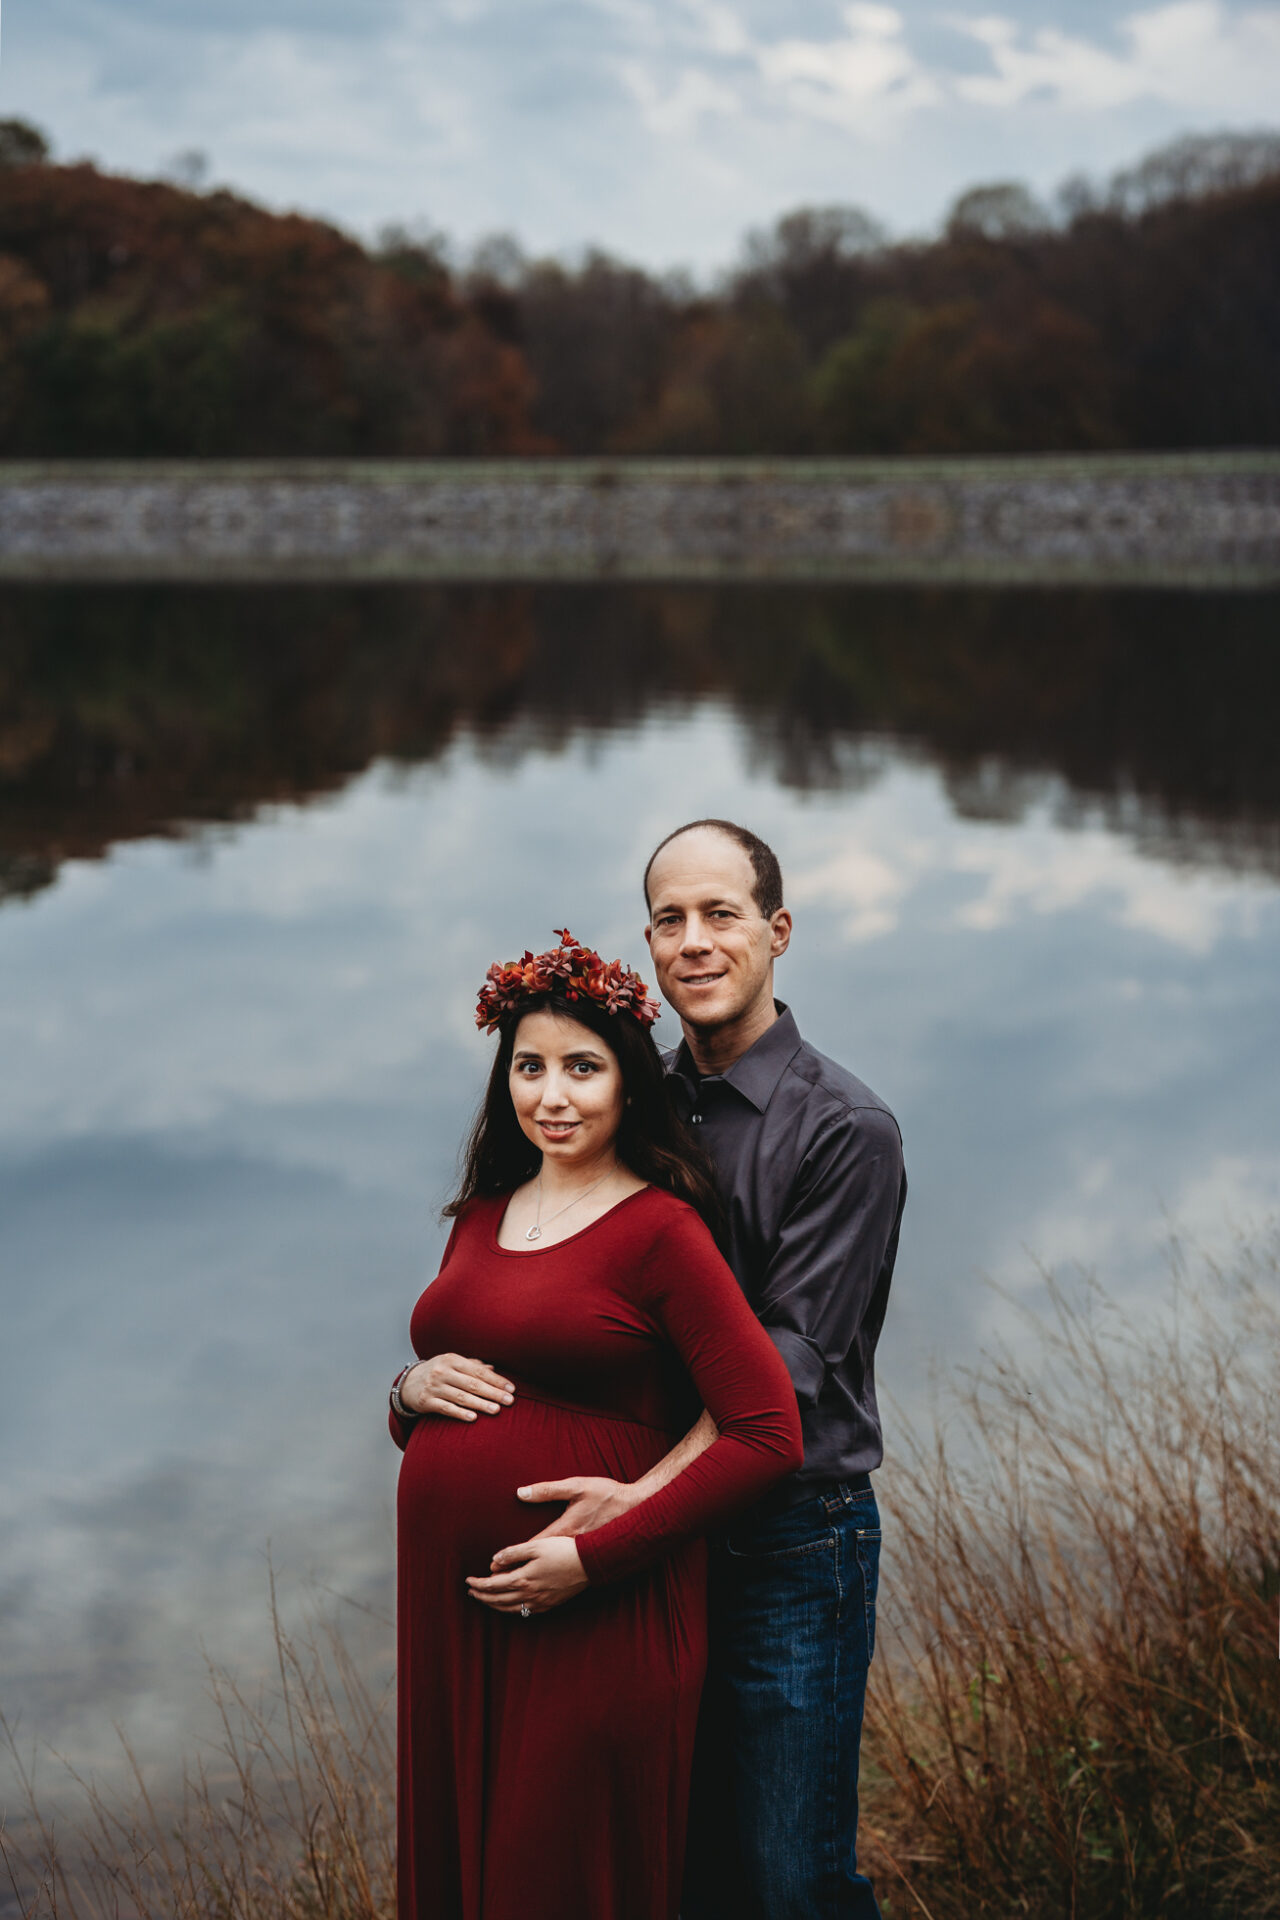 outdoor maternity photos pregnancy floral crown lakeside